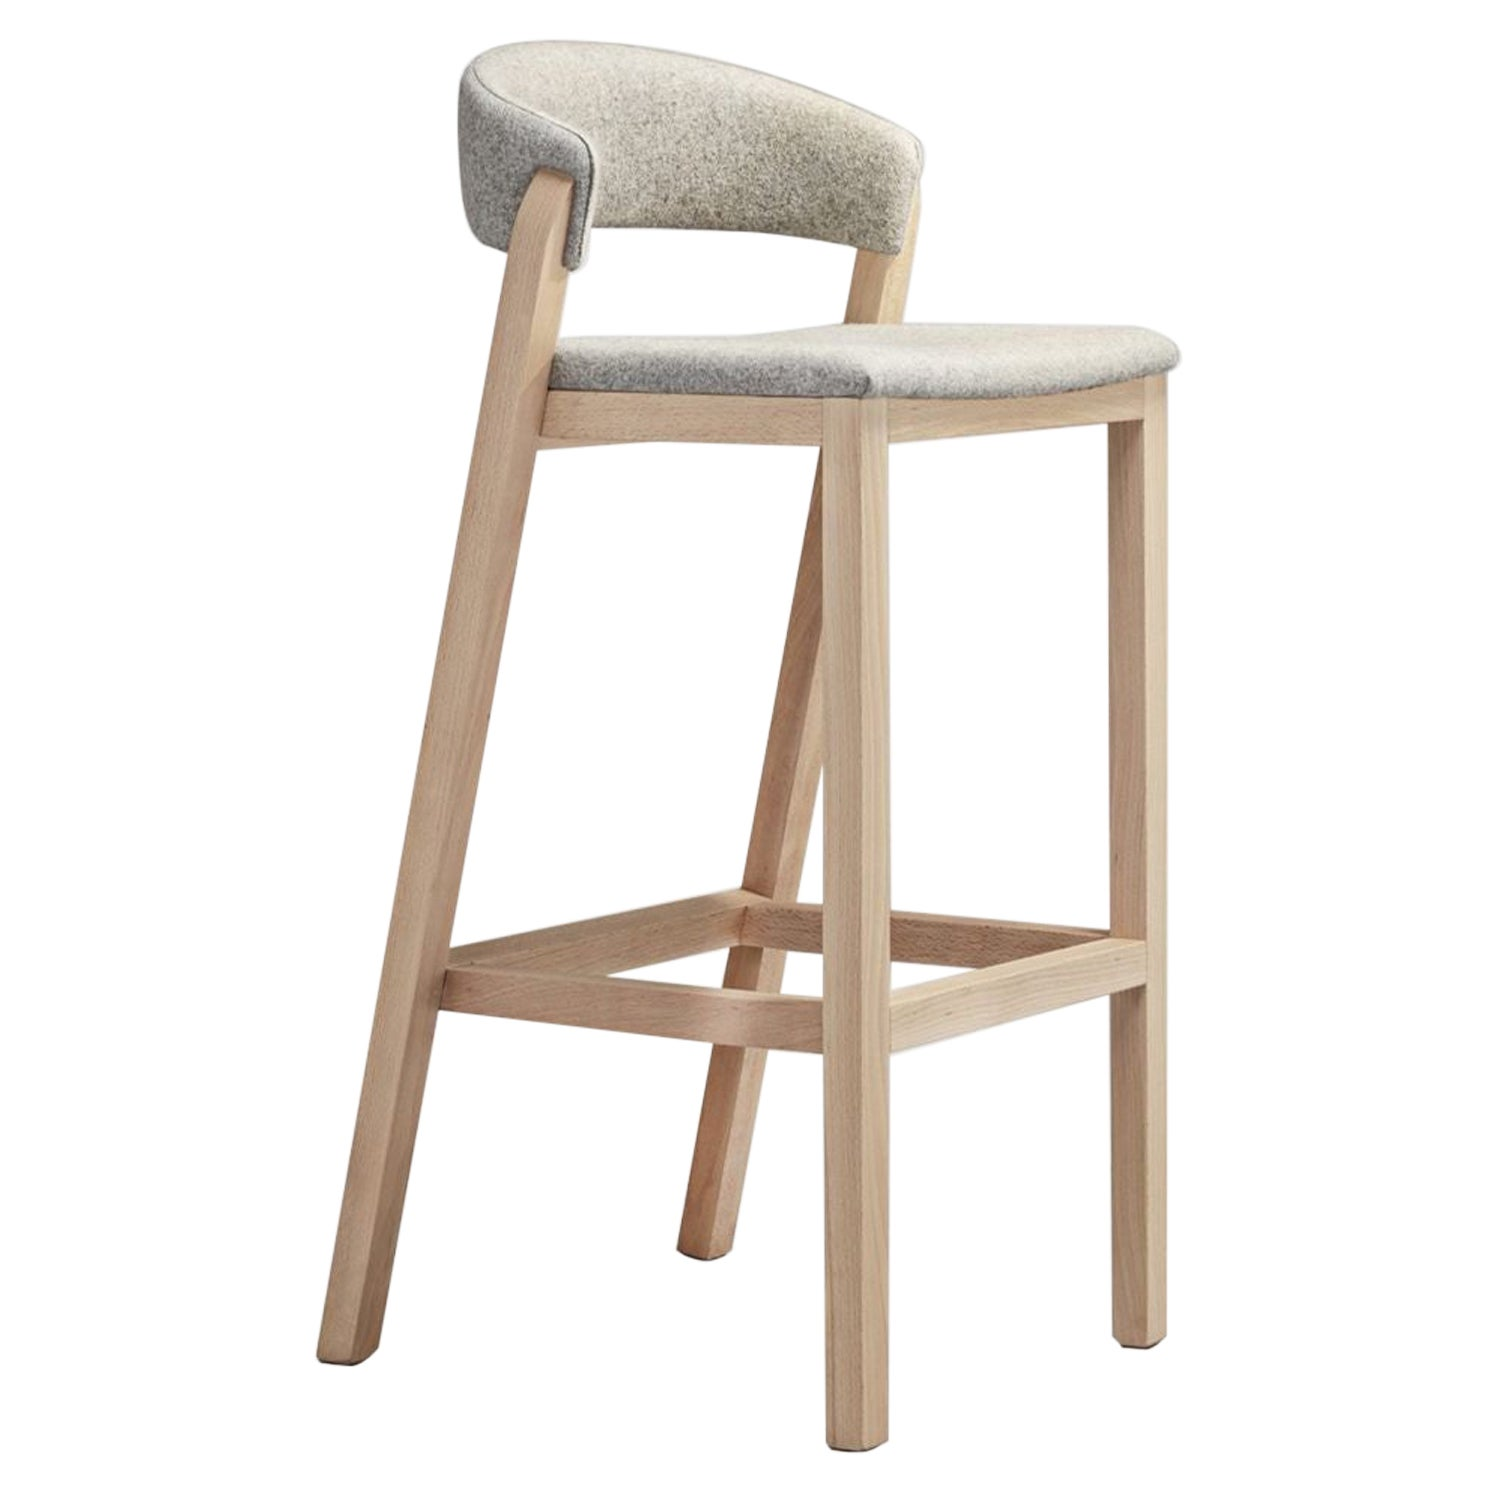 Cream Oslo Stool by Pepe Albargues